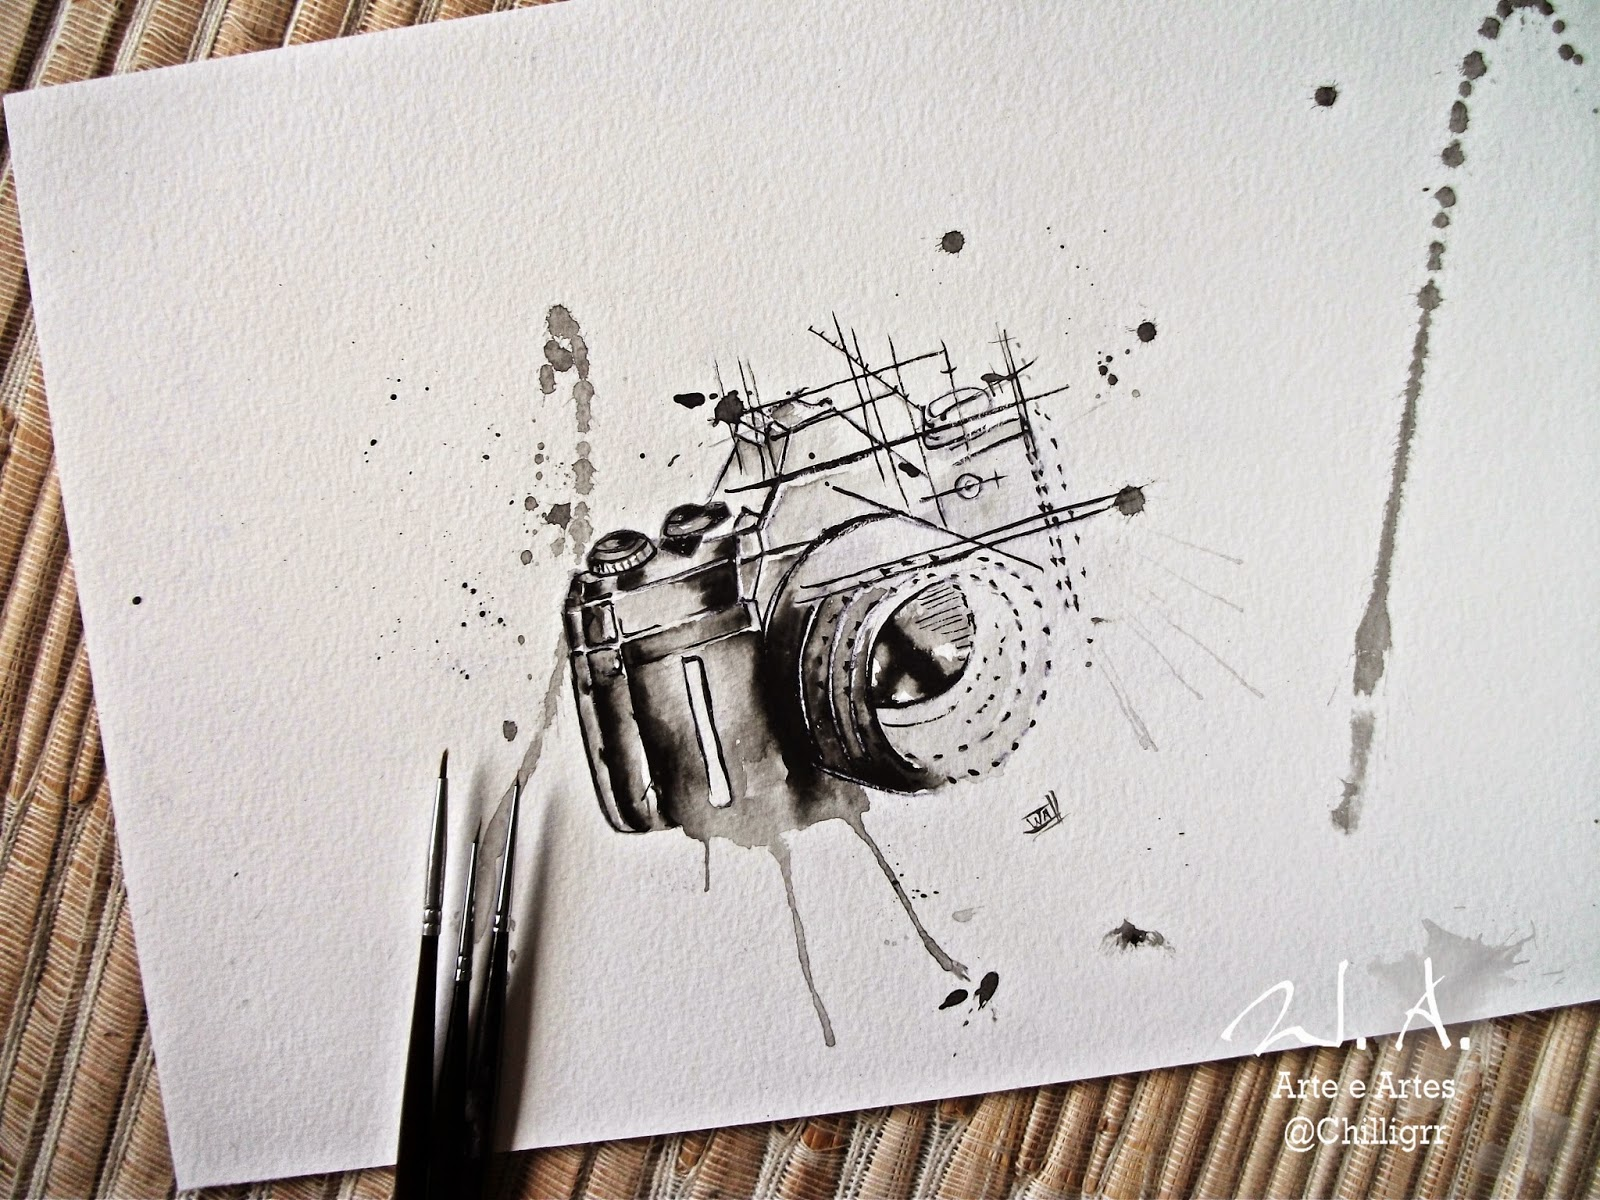 câmera fotográfica, camera pintura, pintura de camera, watercolor, aquarela, pintura aquarela, watercolor camera tattoo, camera tattoo, tattoo art,